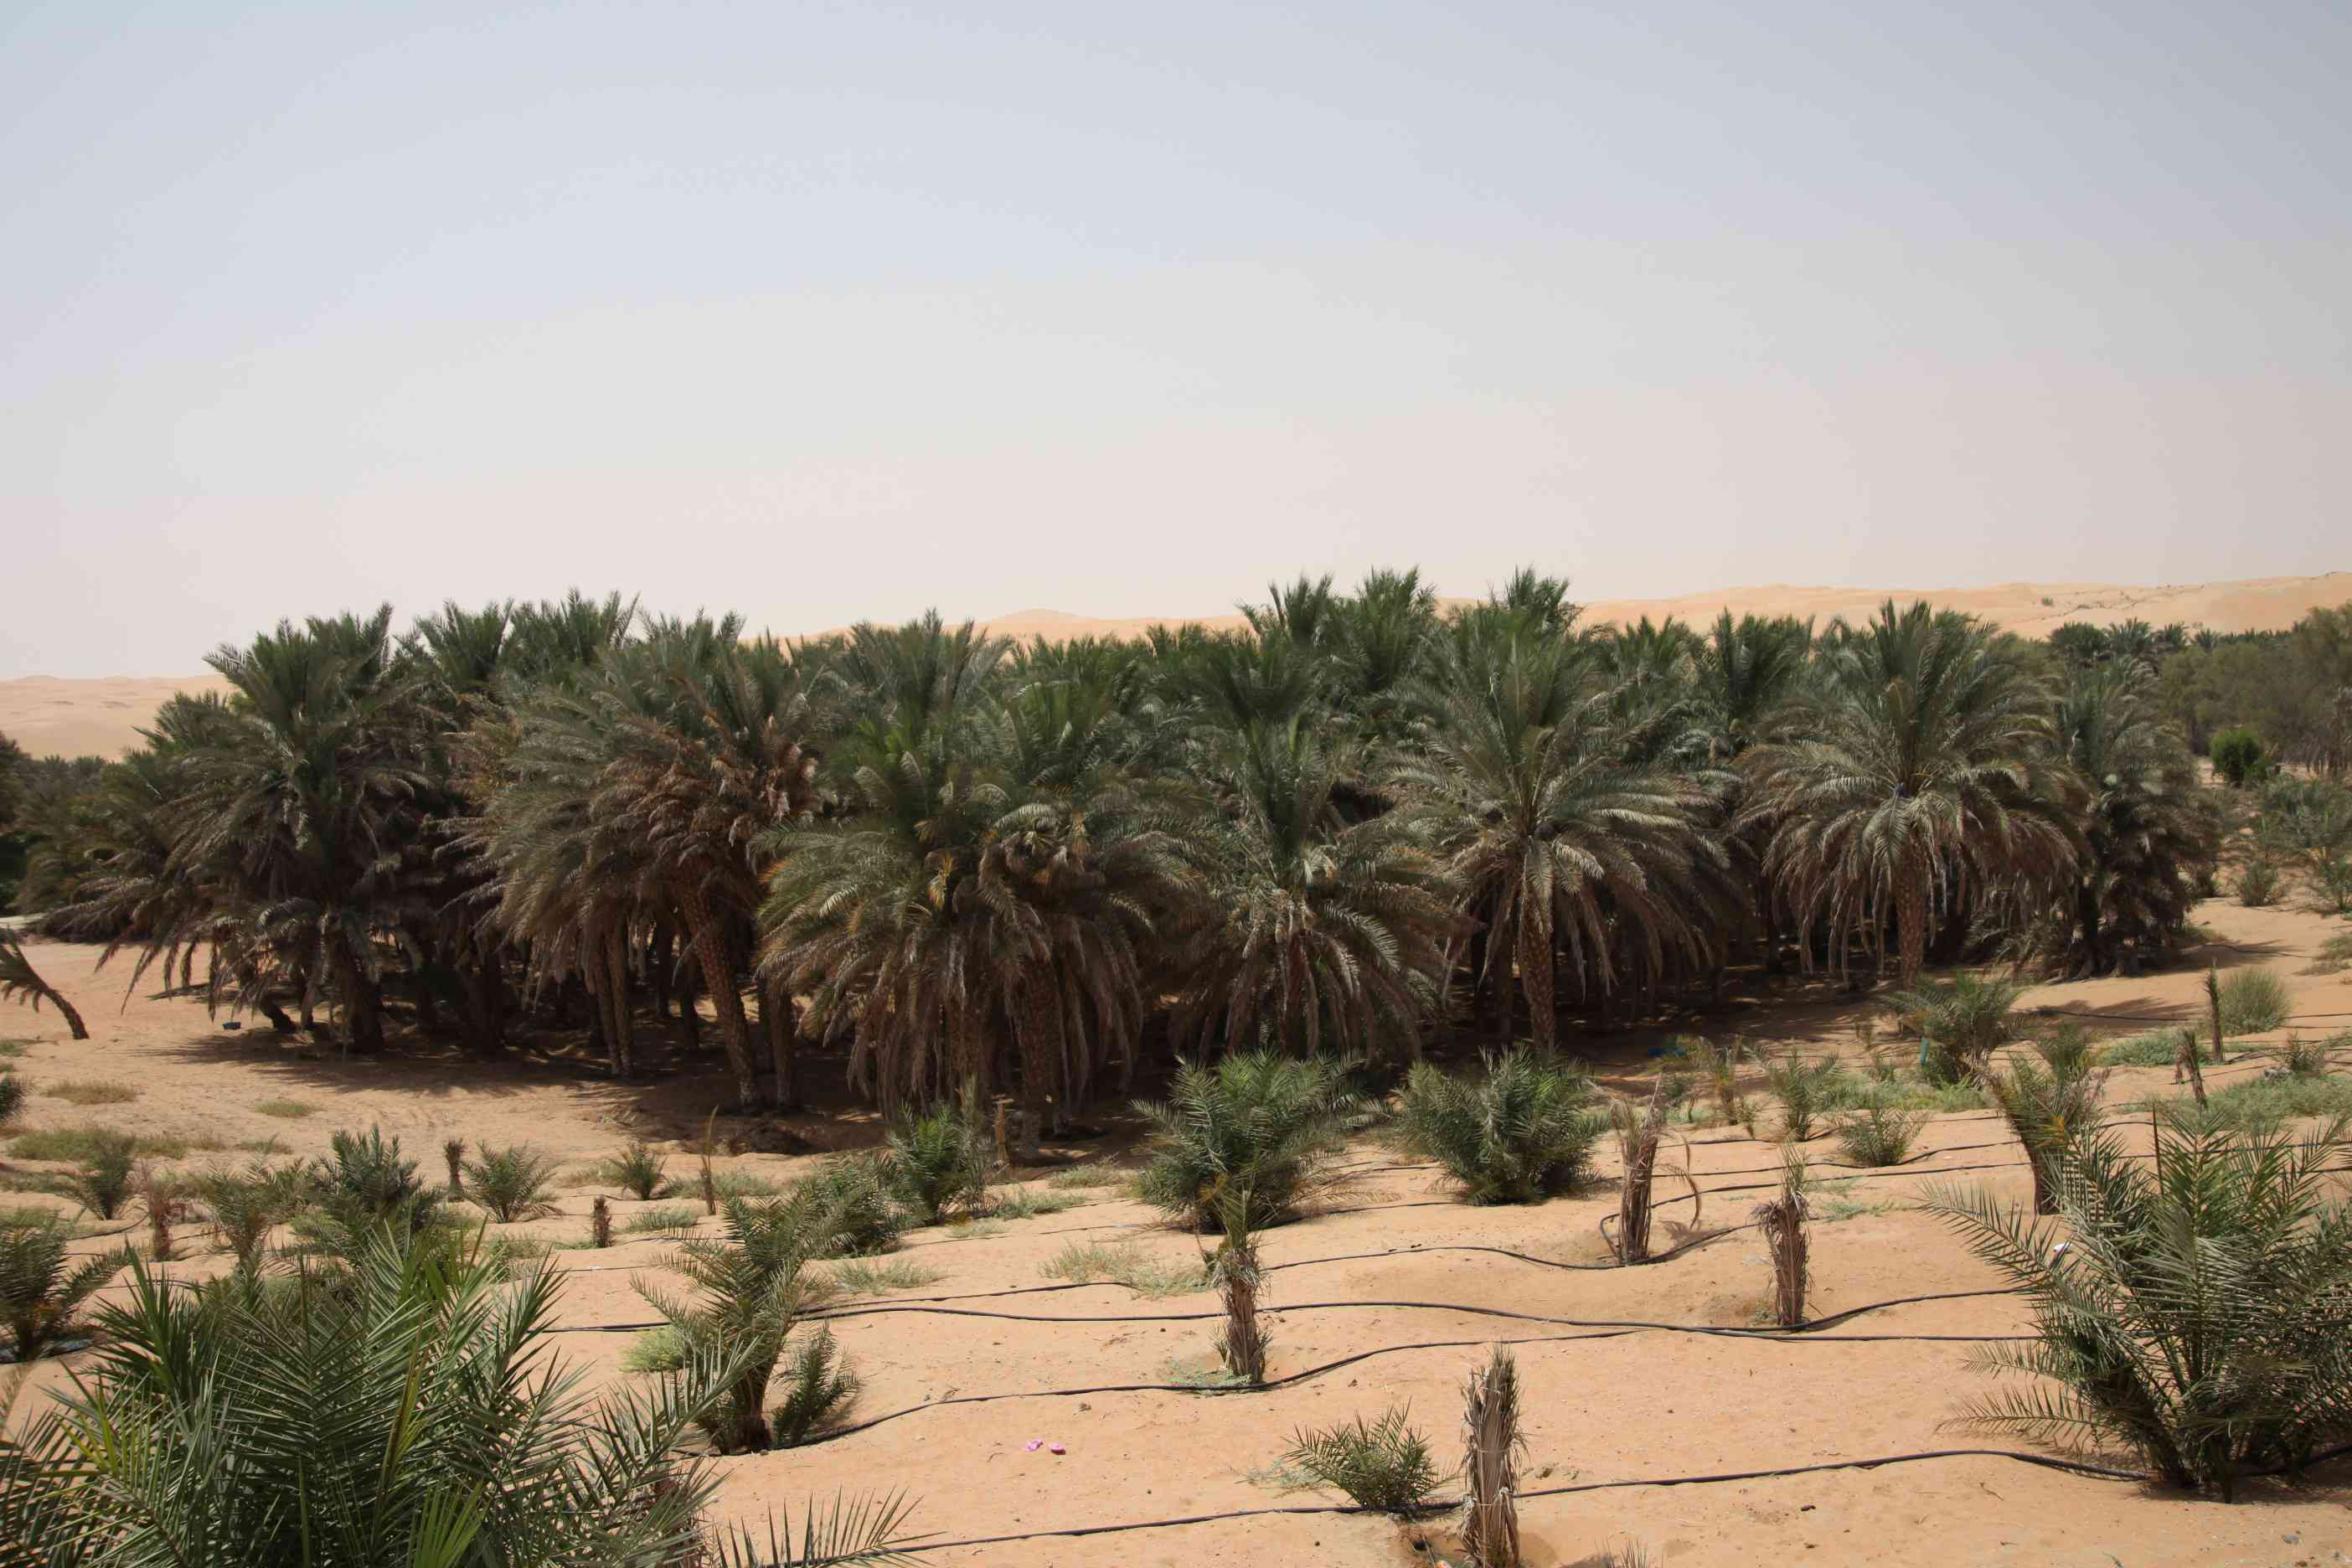 a large stand of date palm trees in the Liwa oasis, UAE